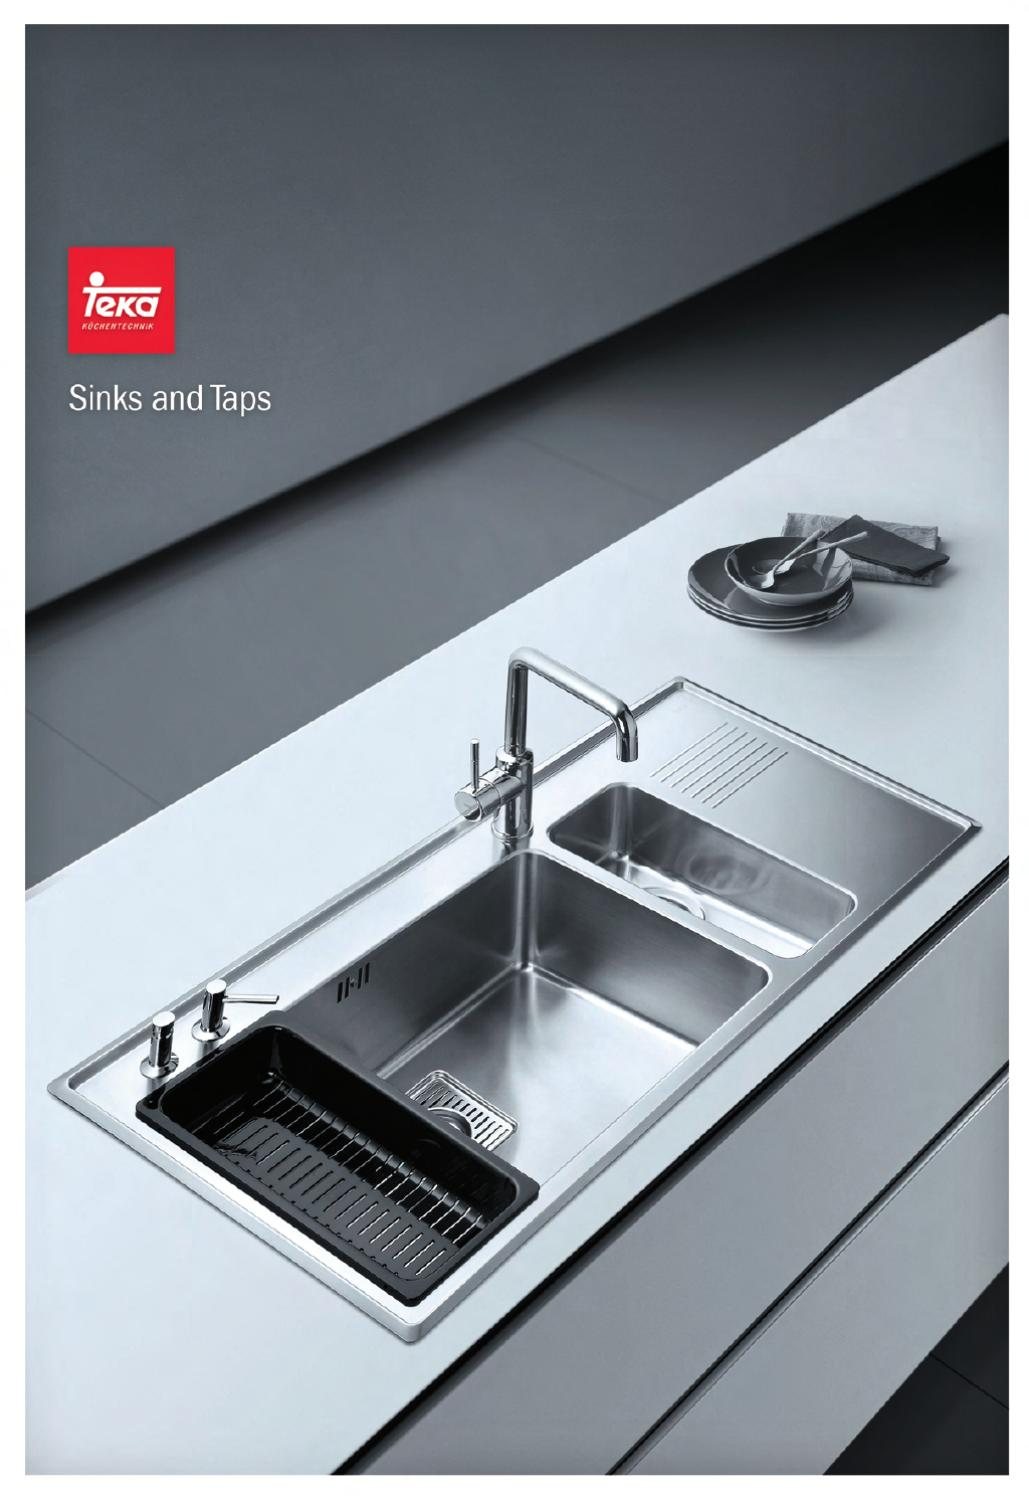 Teka master sink catalogue by Adolfo ramirez - issuu